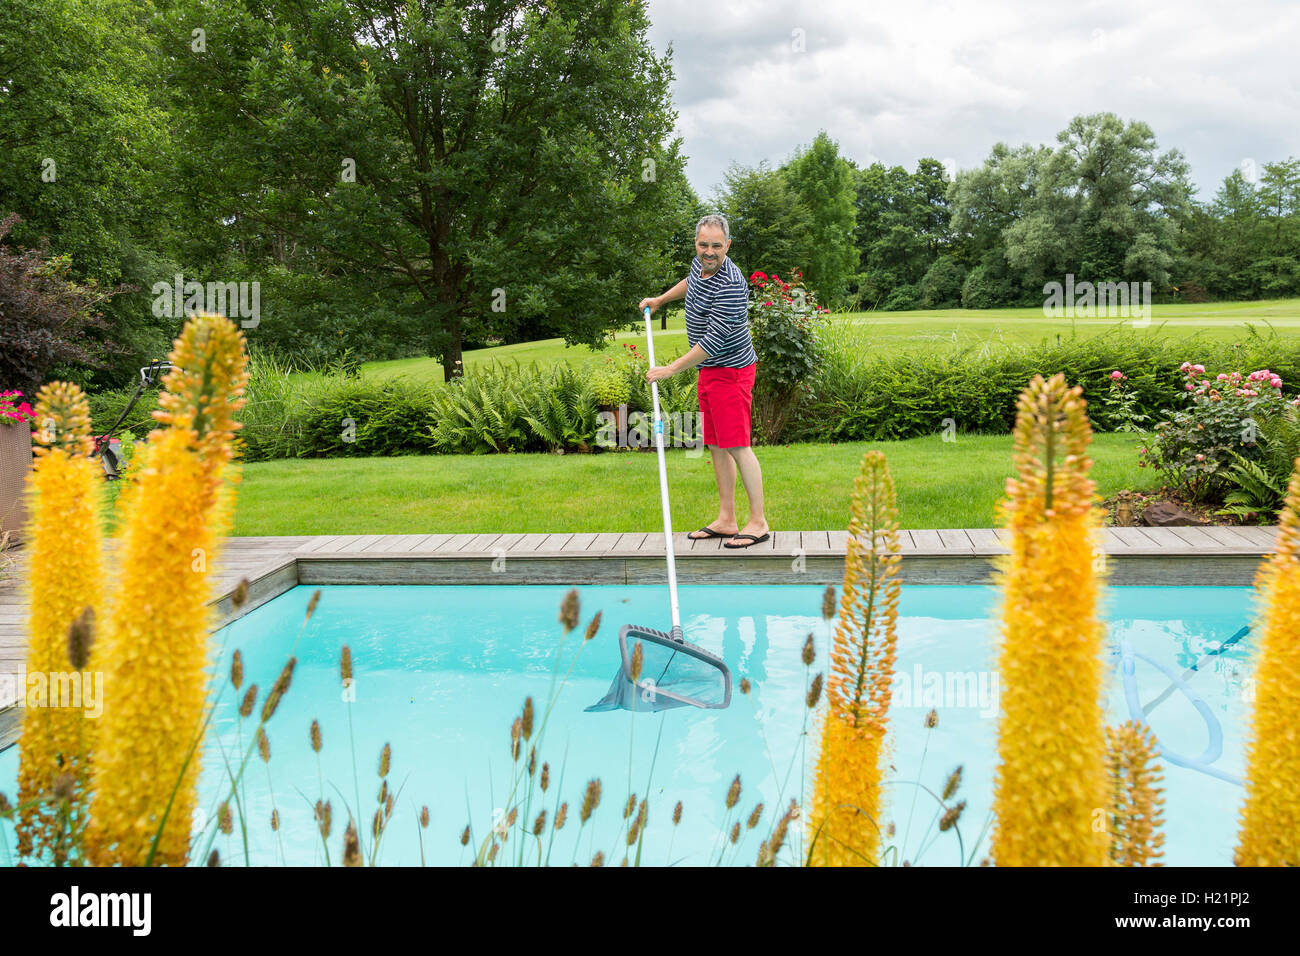 Pool Rohre Reinigen Swimming Pool Cleaning Stockfotos Swimming Pool Cleaning Bilder